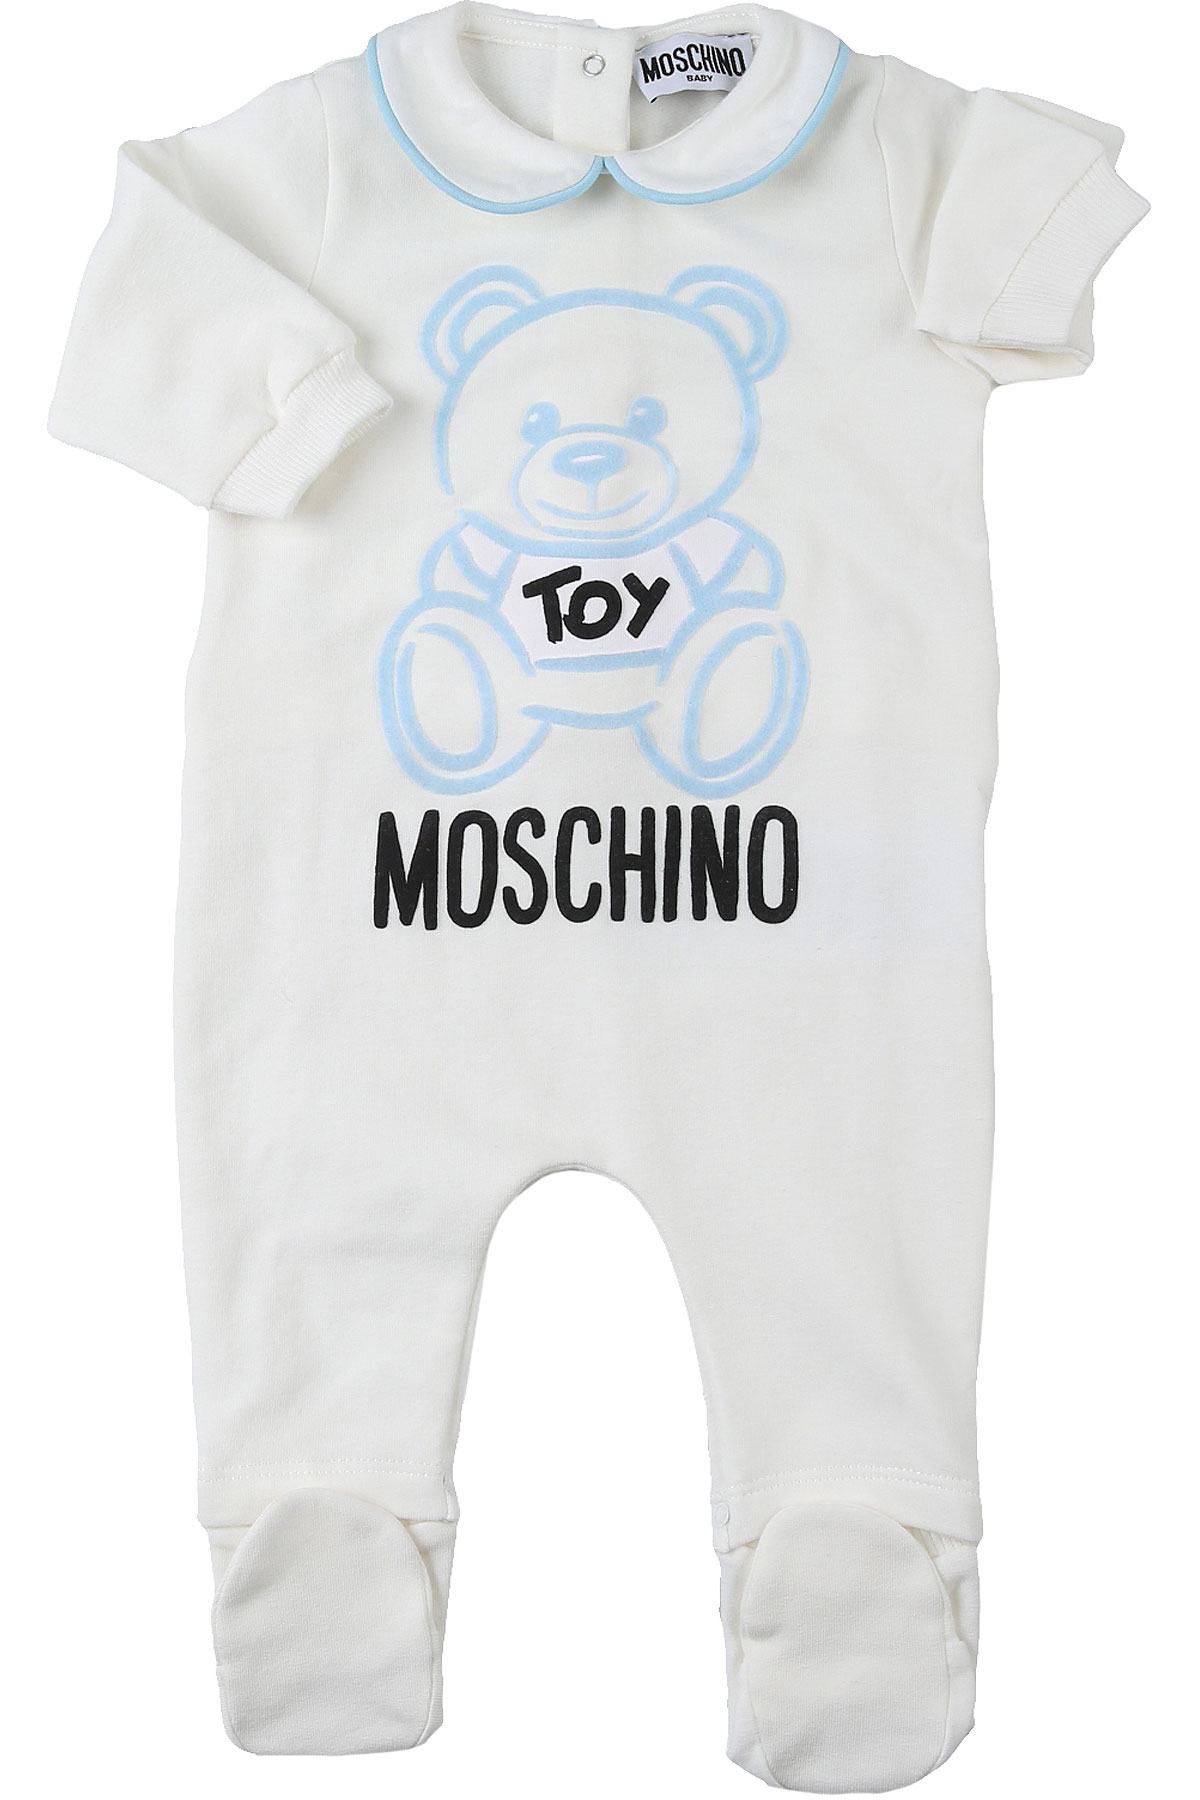 Moschino Baby Bodysuits & Onesies for Boys On Sale, White, Cotton, 2019, 3M 6M 9M